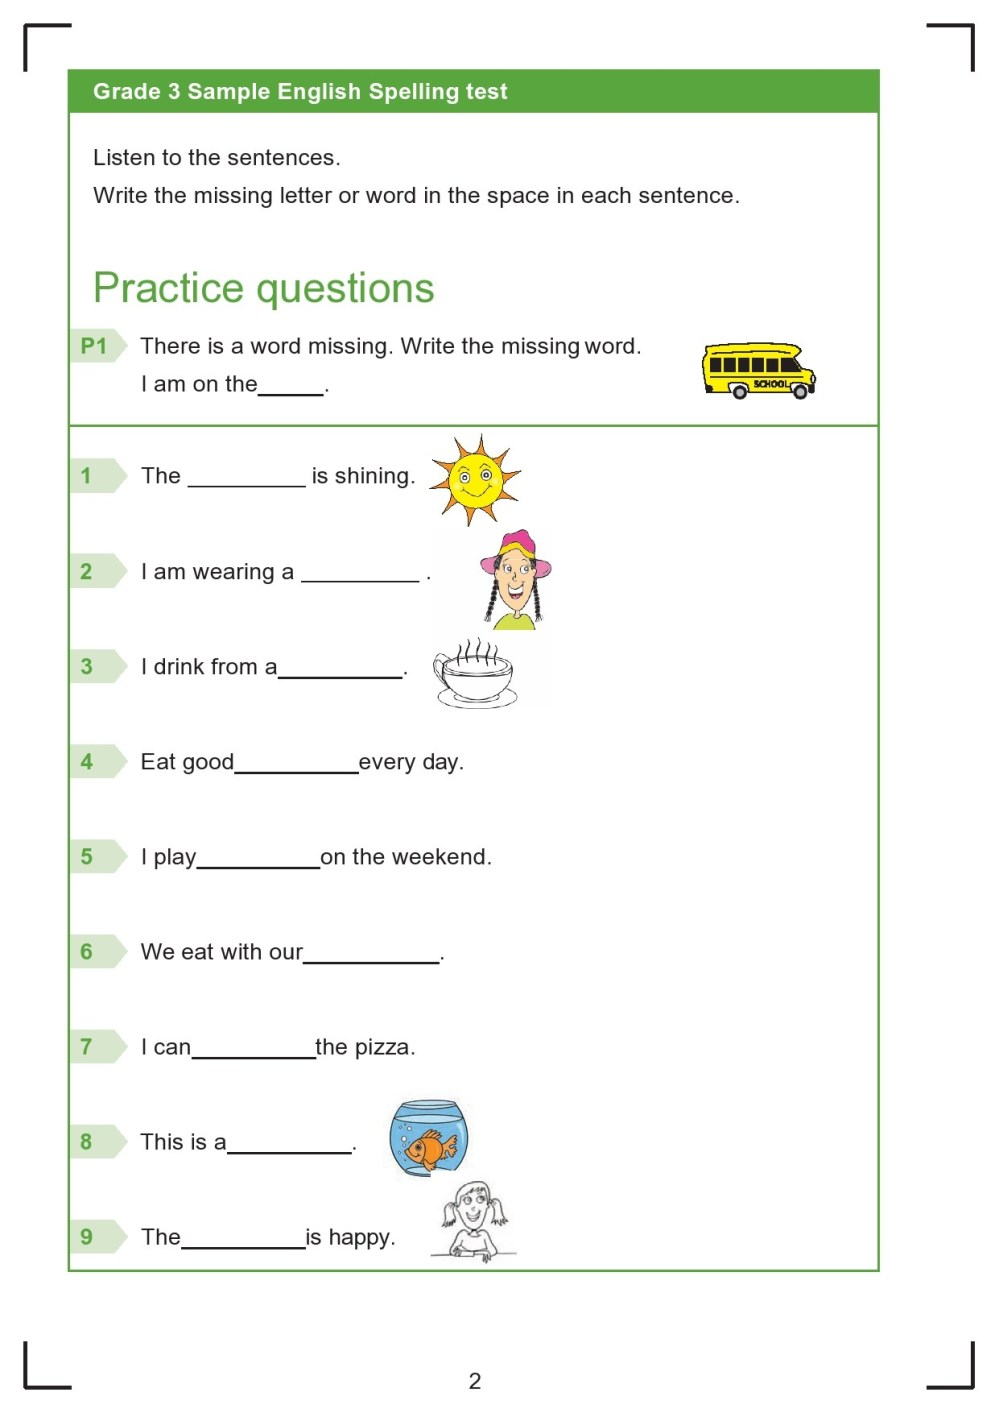 medium resolution of 38 Printable Spelling Test Templates Word \u0026 PDF ᐅ TemplateLab